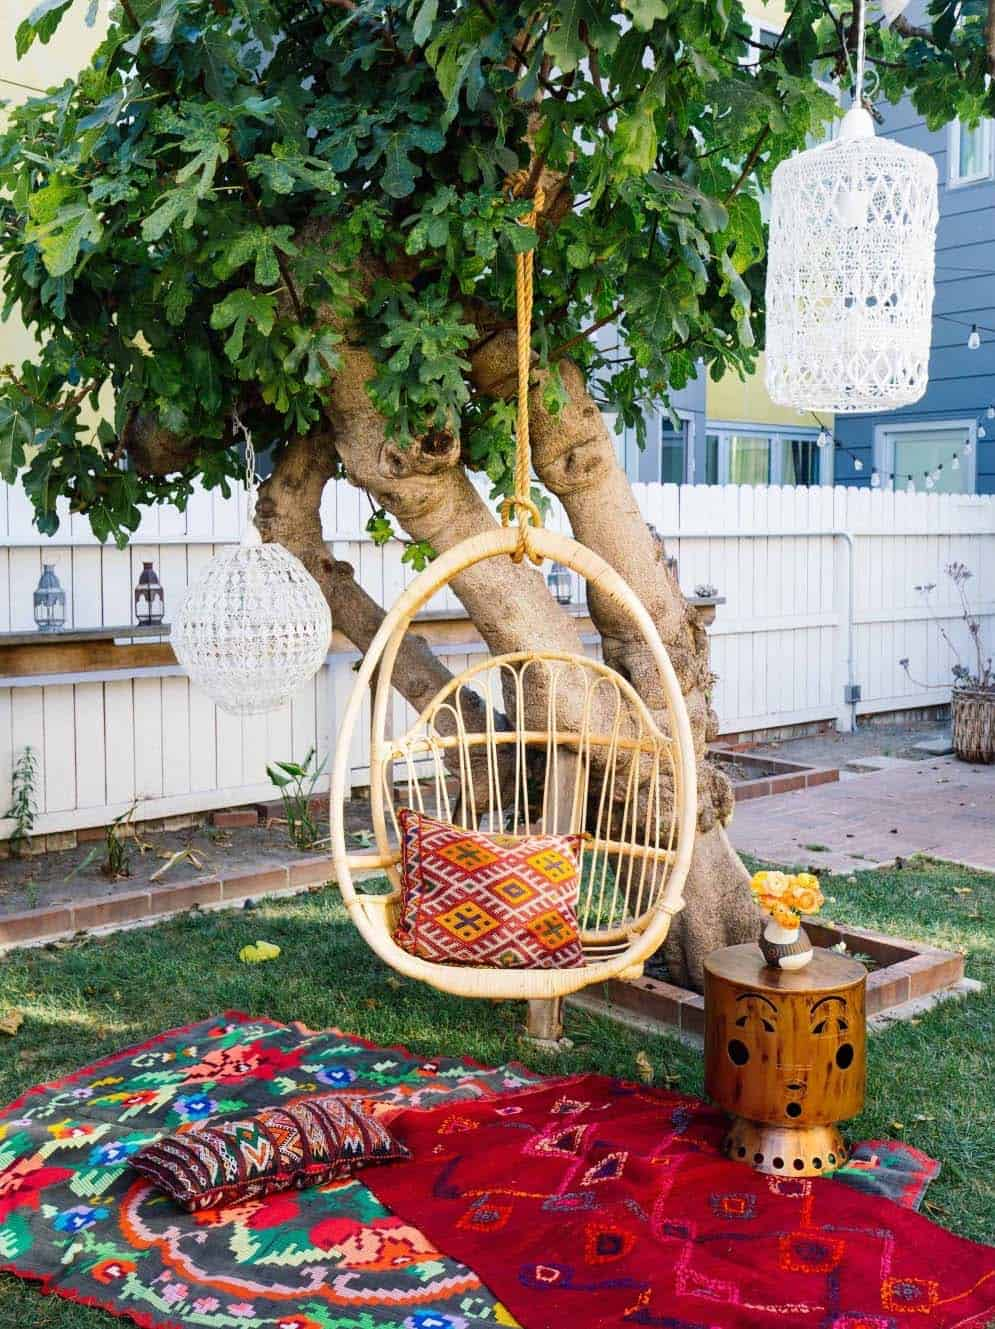 Bohemian Garden Design Ideas-04-1 Kindesign